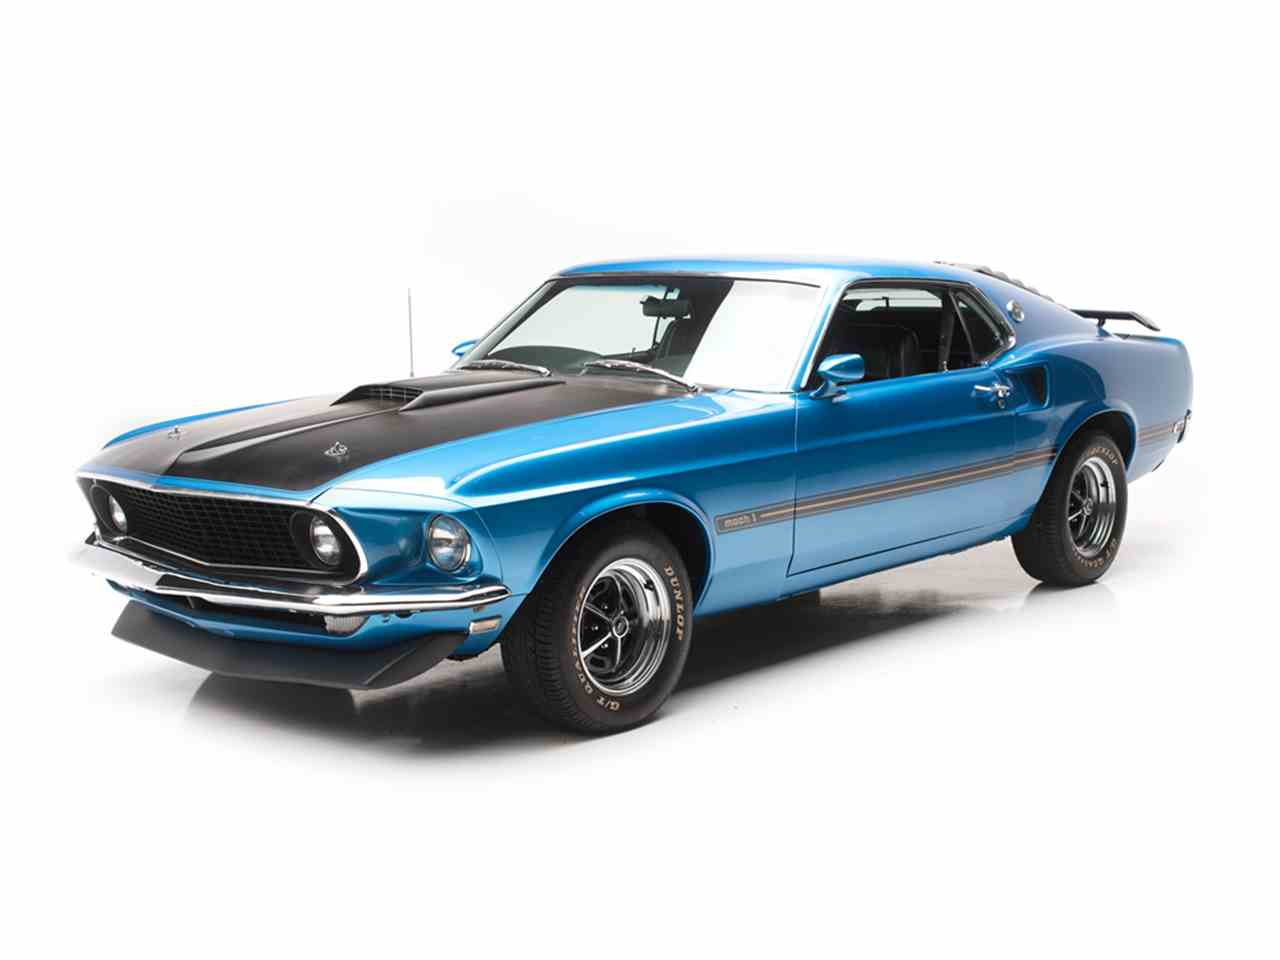 1969 Ford Mustang Mach 1 for Sale | ClassicCars.com | CC-1023195